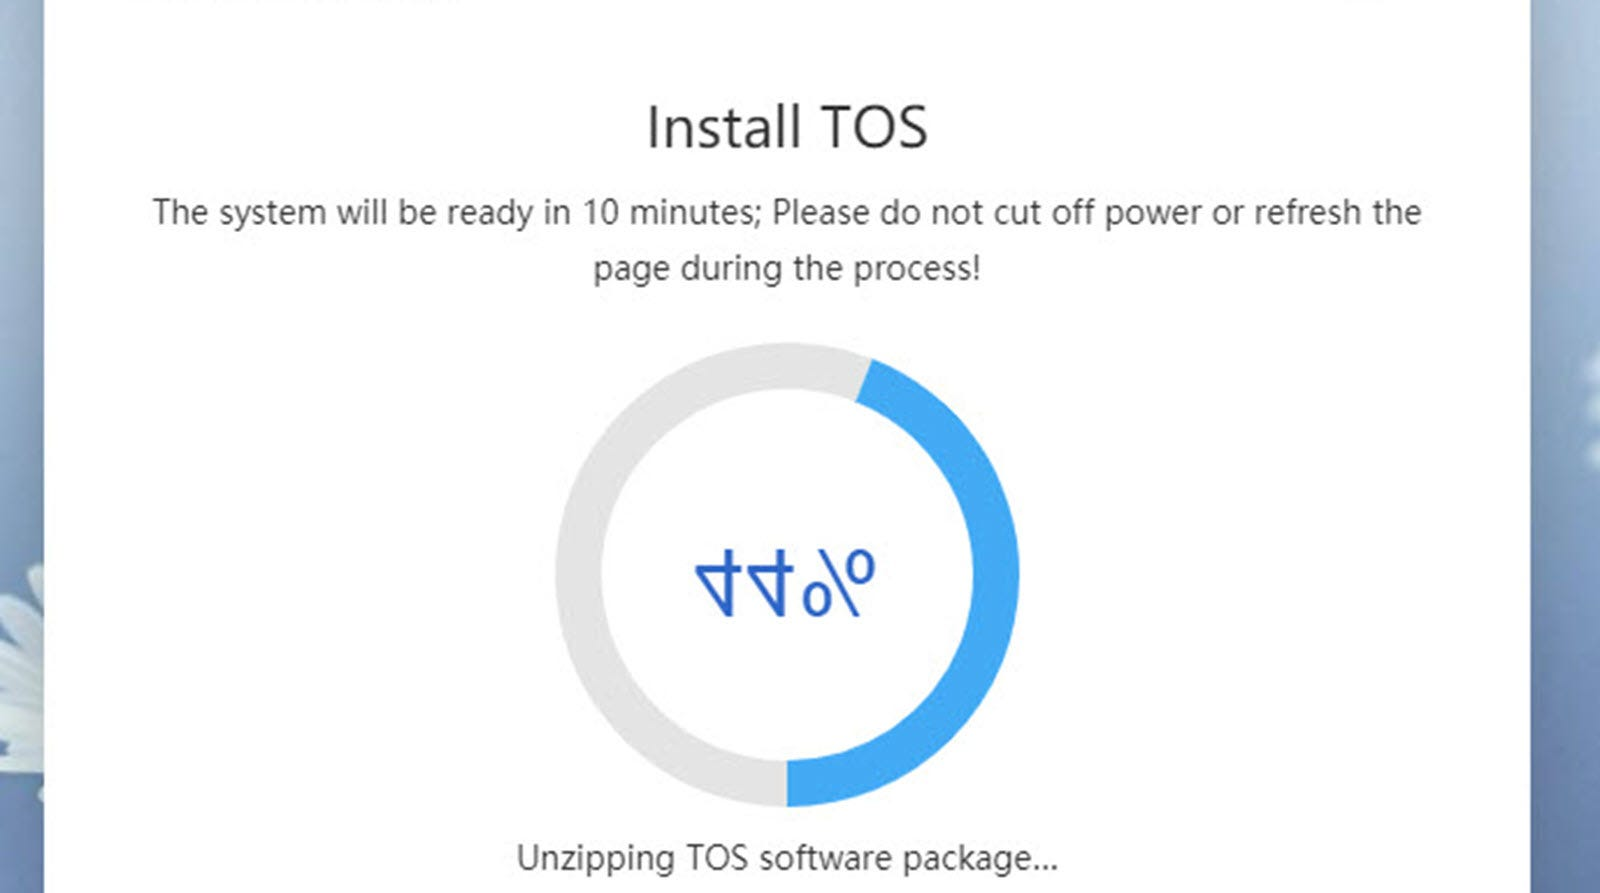 an OS Install dialog, with an upside down 44% and progress circle.